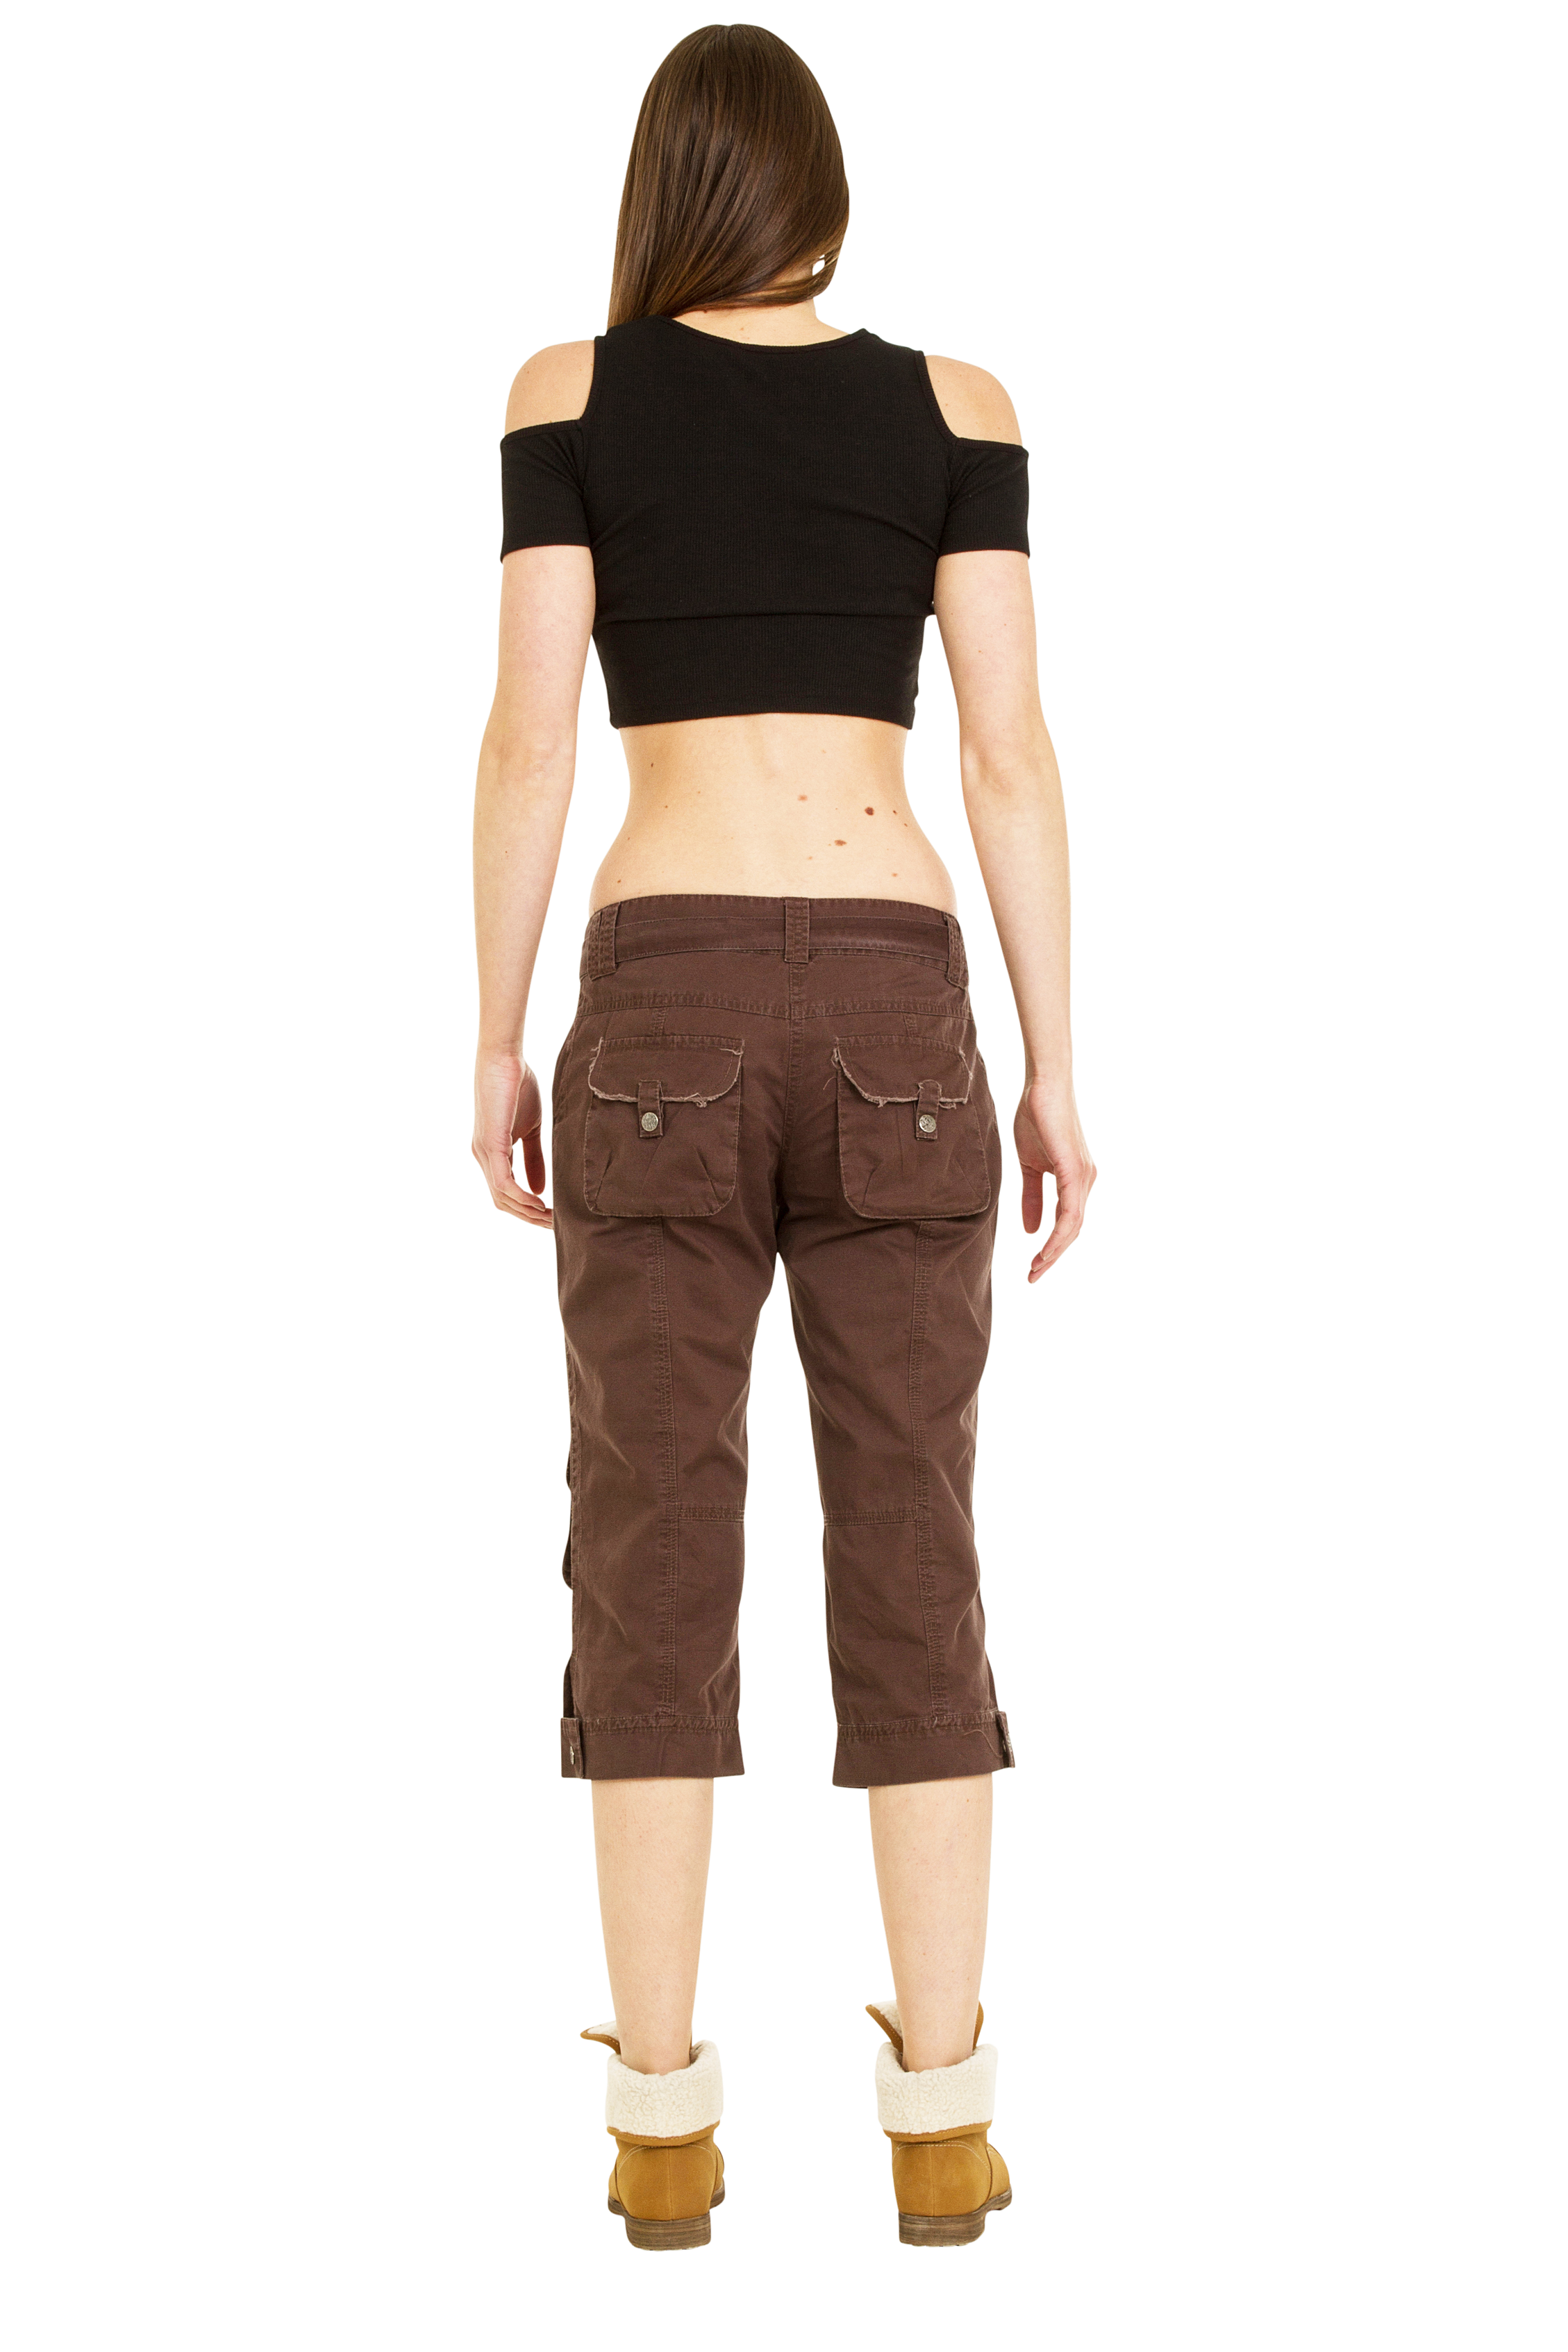 Excellent New Womens Brown Slim Fitted Combat Pants Skinny Cargo Trousers Boyfriend Jeans | EBay